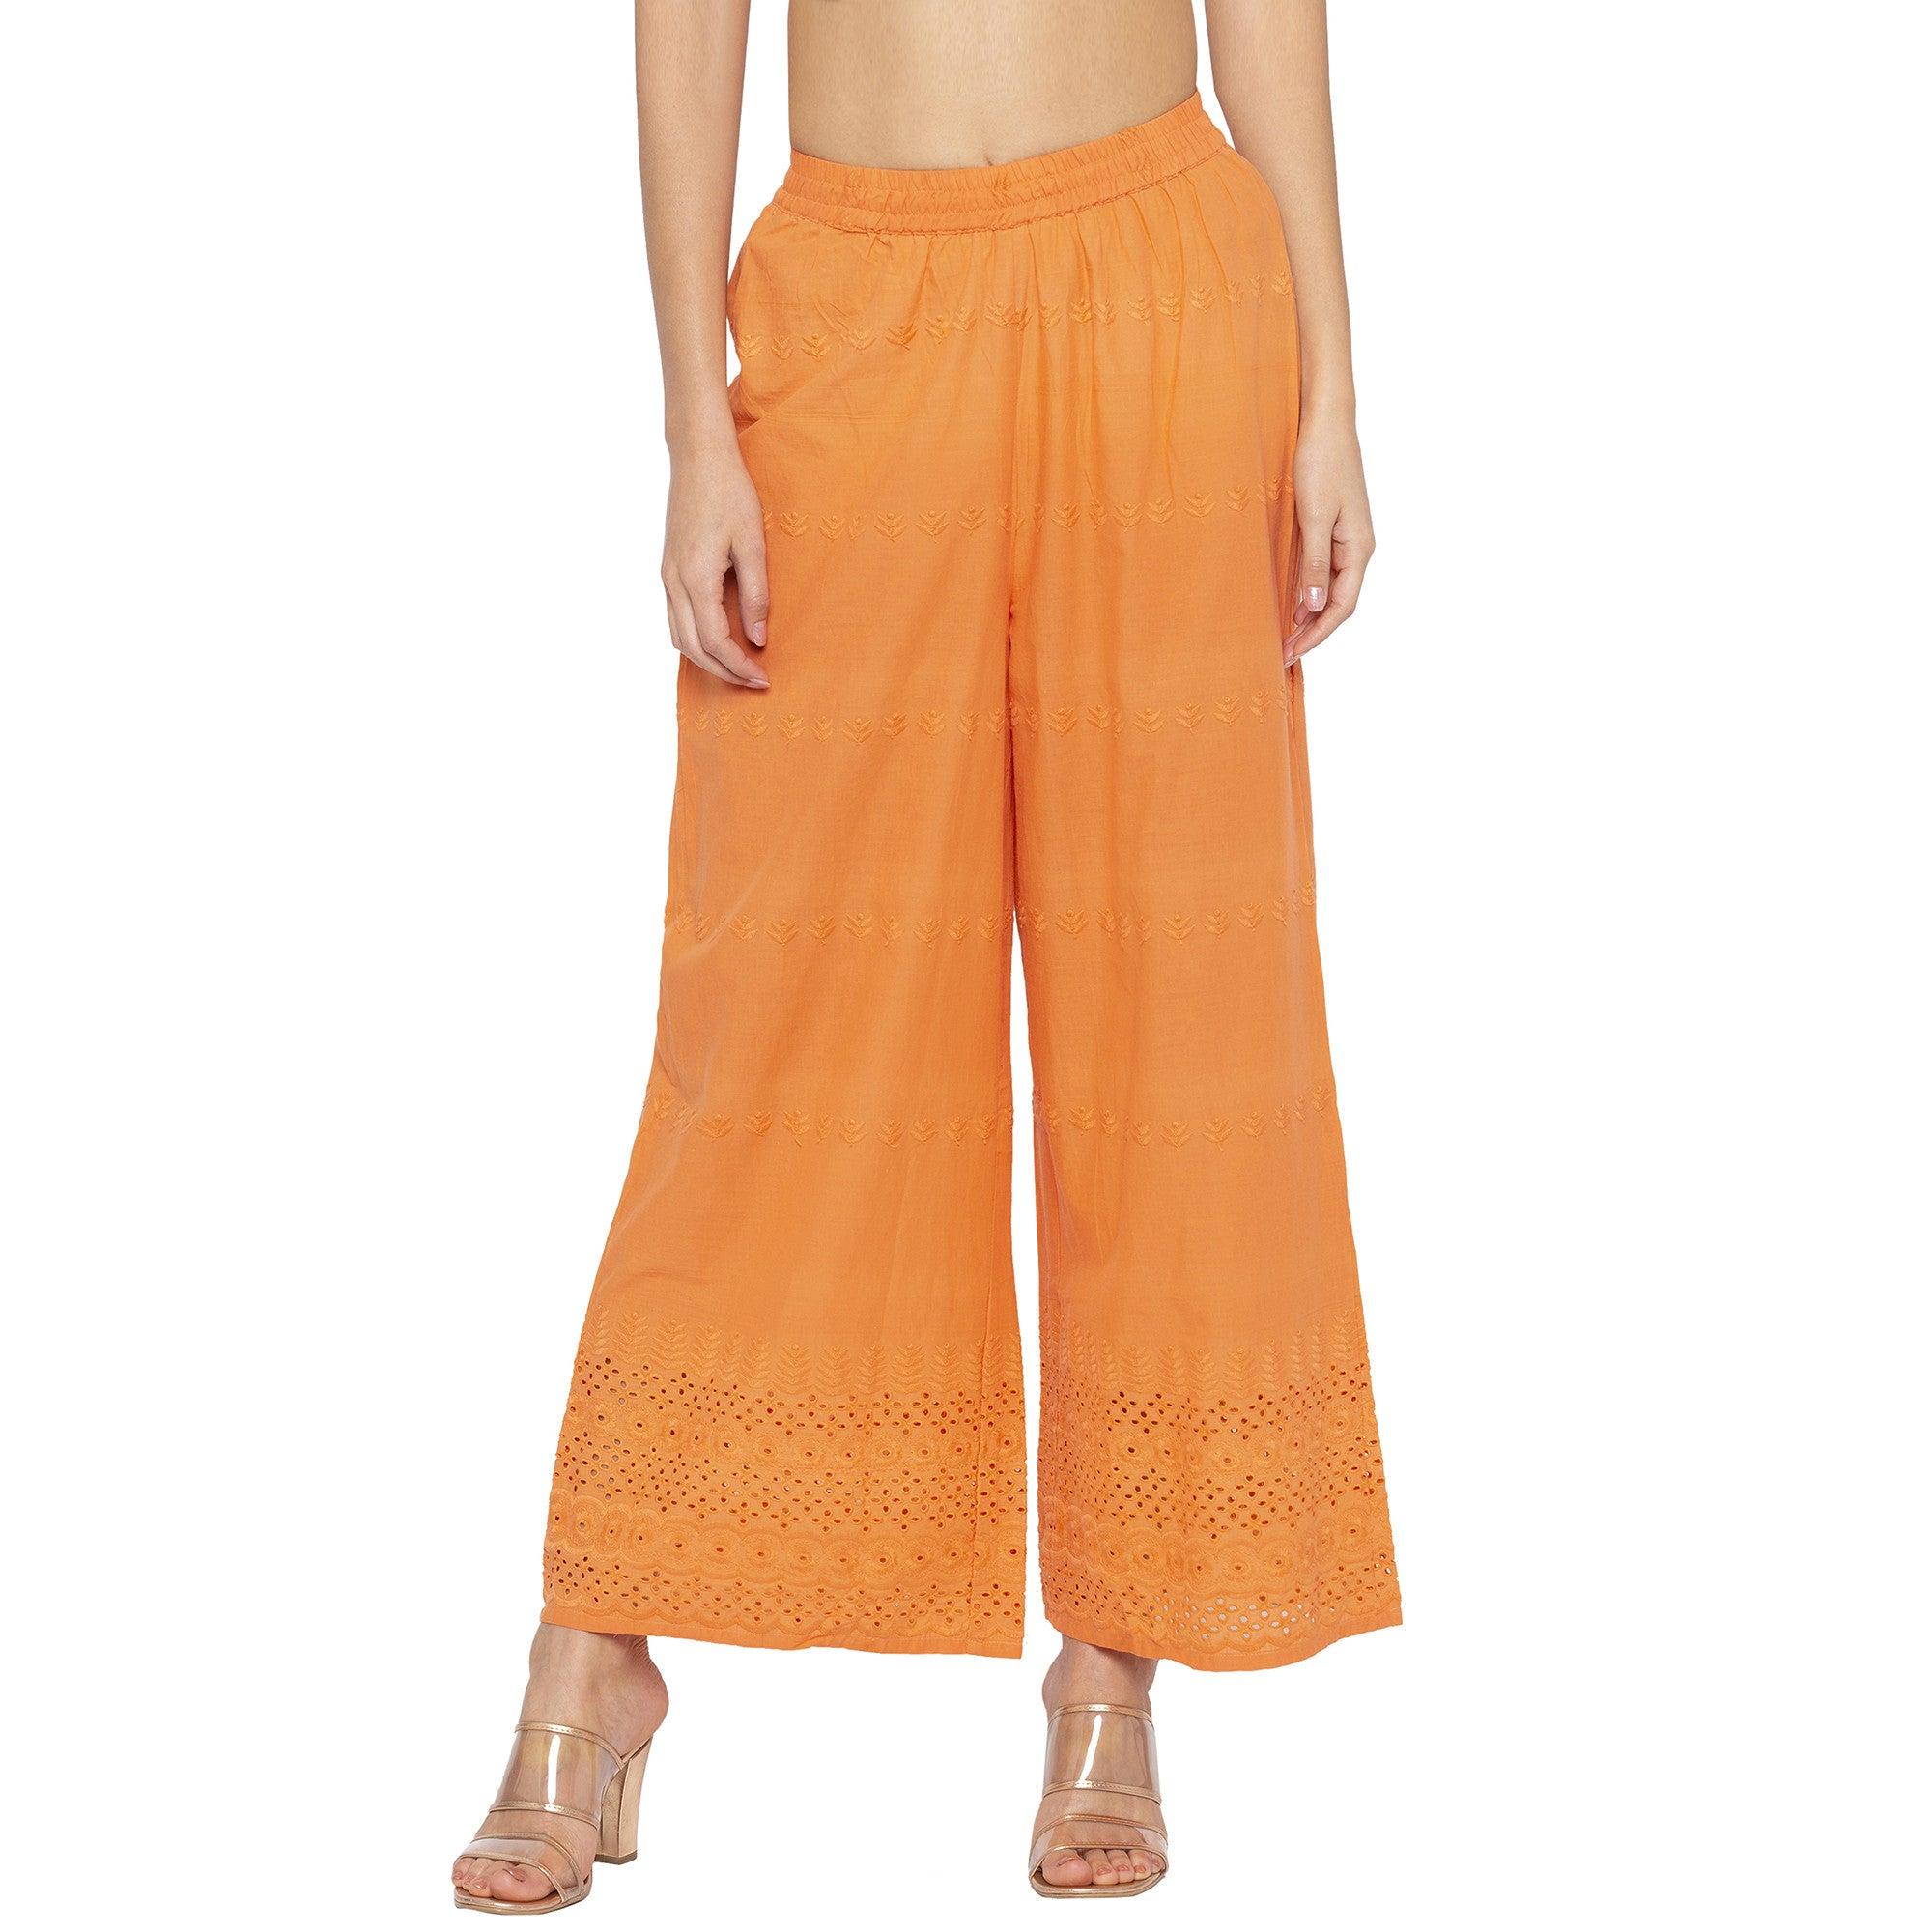 Casual Orange Color Loose Fit Regular Parallel Trousers-1